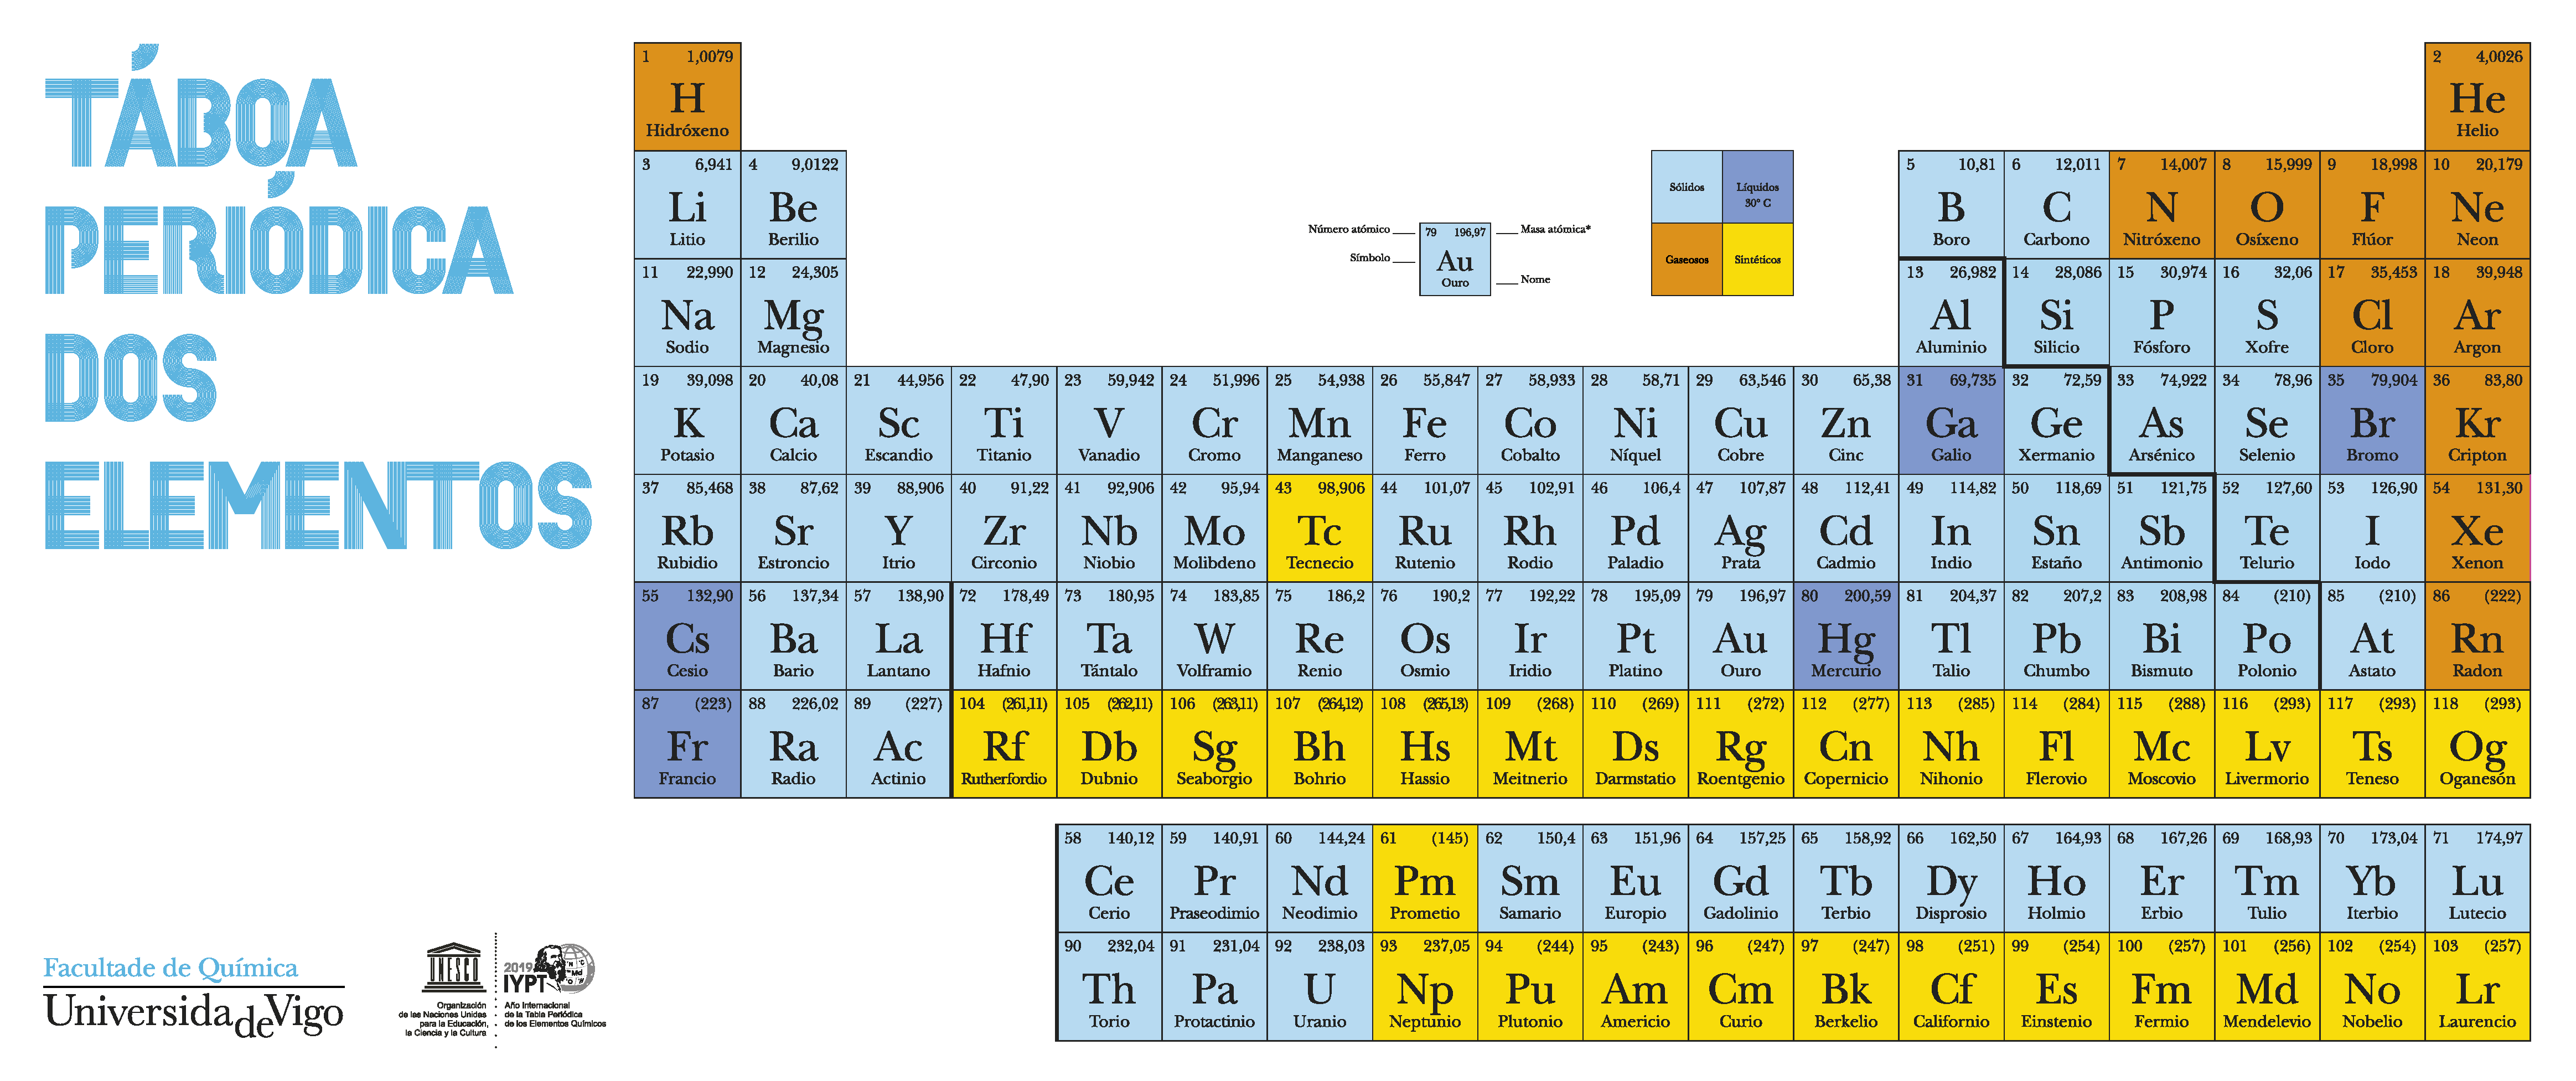 International Year Periodic Table 2019 | IYPT 2019